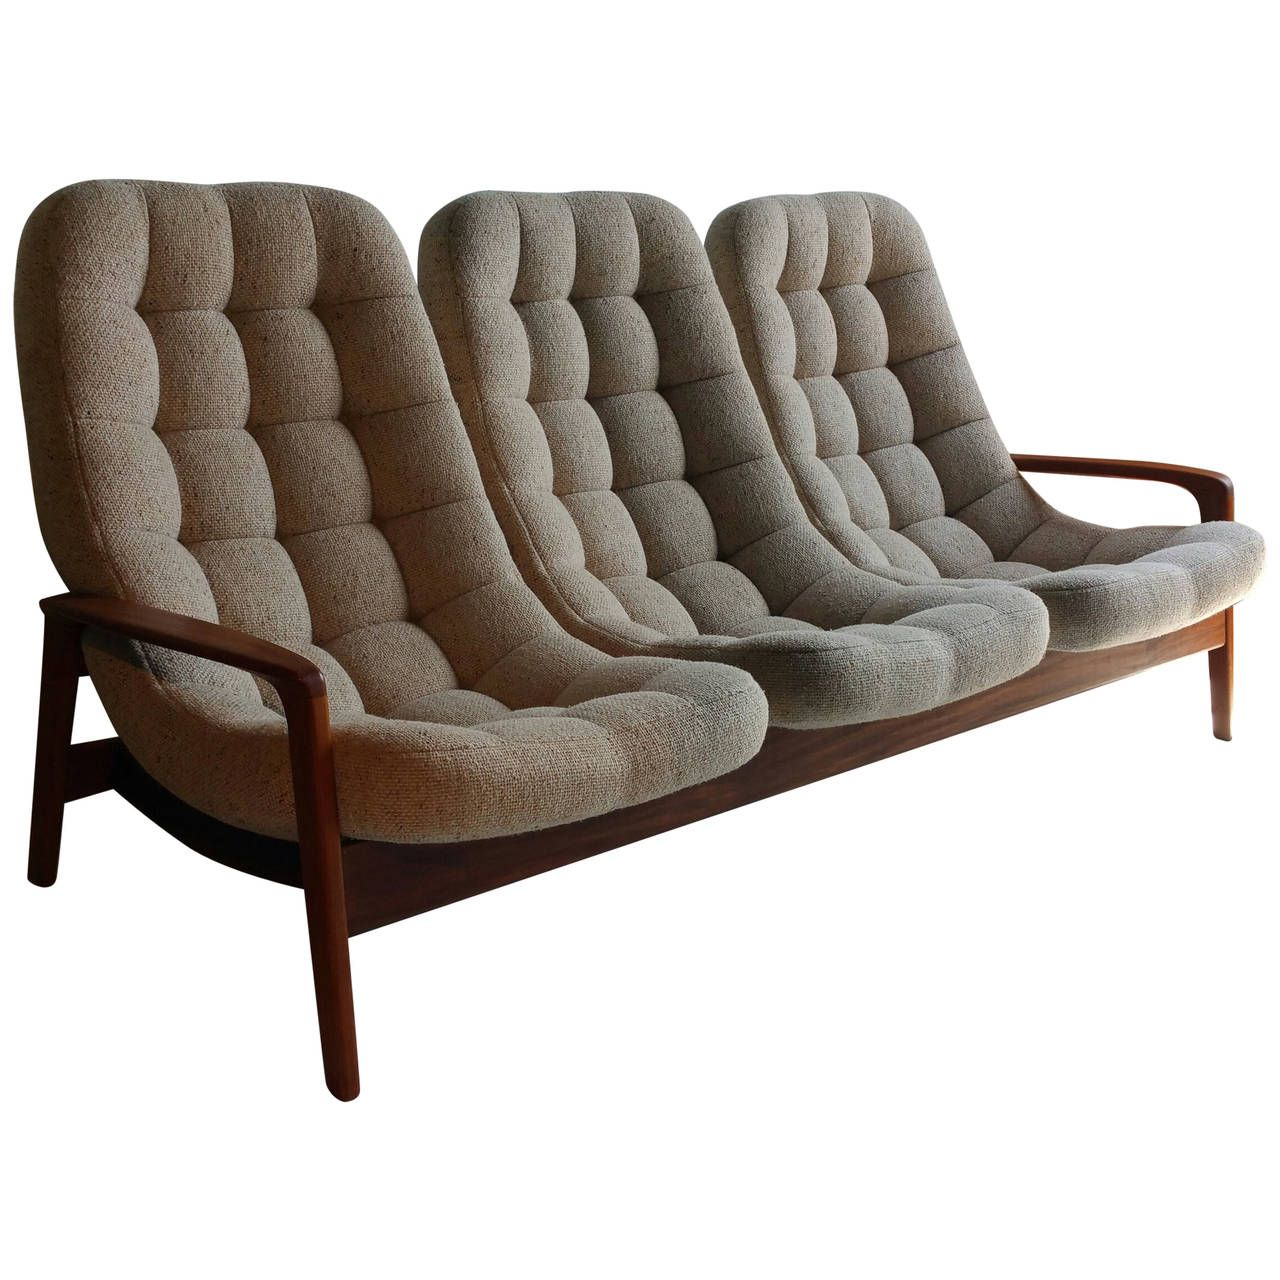 Teak Floating Egg Sofa By R Huber And Co Mid Century Danish In 2019